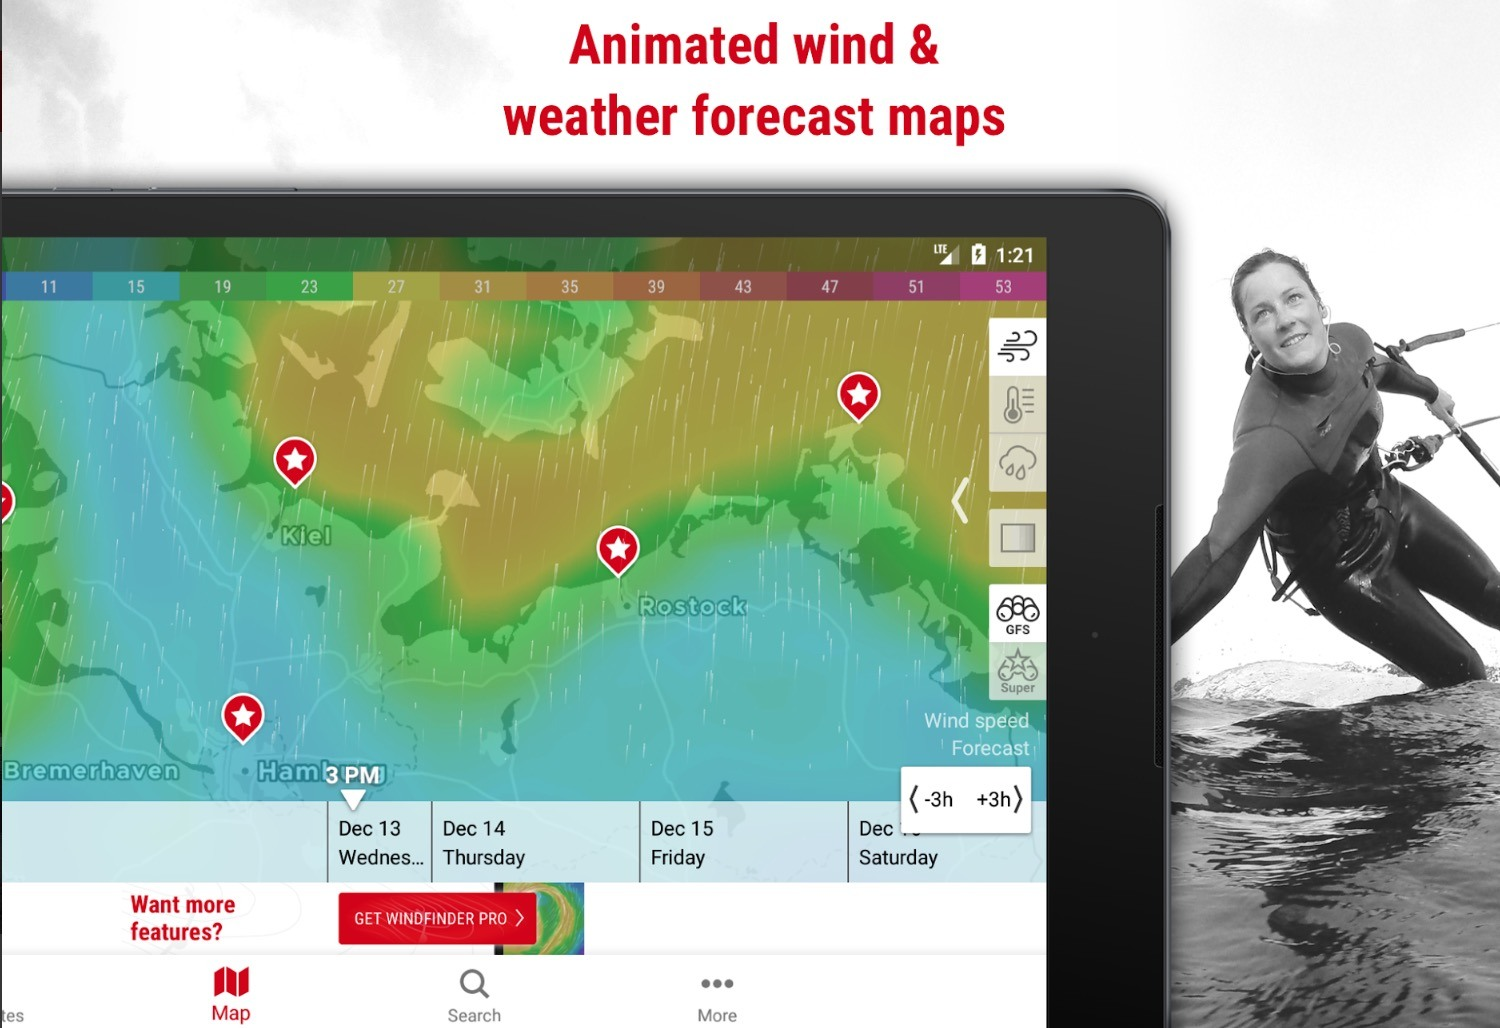 "Windfinder ""width ="" 500 ""height ="" 343 ""srcset ="" https://tutomoviles.com/wp-content/uploads/2020/01/1580241631_669_7-application-Android-best-to-check-speed-angin- en este momento.jpg 1500w, https://androidappsforme.com/wp-content/ uploads / 2019 /11 / Windfinder-300x206.jpg 300w, https://androidappsforme.com/wp-content/uploads/2019/11/Windfinder-1024x702.jpg 1024w, https://androidappsforme.com/wp-content/ uploads / 2019 /11 / Windfinder-150x103.jpg 150w, https://androidappsforme.com/wp-content/uploads/2019/11/Windfinder-768x526.jpg 768w, https://androidappsforme.com/wp-content/ uploads / 2019 /11 / Windfinder-80x55.jpg 80w, https://androidappsforme.com/wp-content/uploads/2019/11/Windfinder-220x151.jpg 220w, https://androidappsforme.com/wp-content/ uploads / 2019 /11 / Windfinder-146x100.jpg 146w, https://androidappsforme.com/wp-content/uploads/2019/11/Windfinder-219x150.jpg 219w, https://androidappsforme.com/wp-content/ uploads / 2019 /11 / Windfinder-347x238.jpg 347w, https://androidappsforme.com/wp-content/uploads/2019/11/Windfinder-606x415.jpg 606w, https://androidappsforme.com / wp-content / uploads / 2019 /11/Windfinder-711x487.jpg 711w, https://androidappsforme.com/wp-content/uploads/2019/11/Windfinder-868x595.jpg 868w ""tamaño ="" (ancho máximo): 500px) 100vw, 500px"